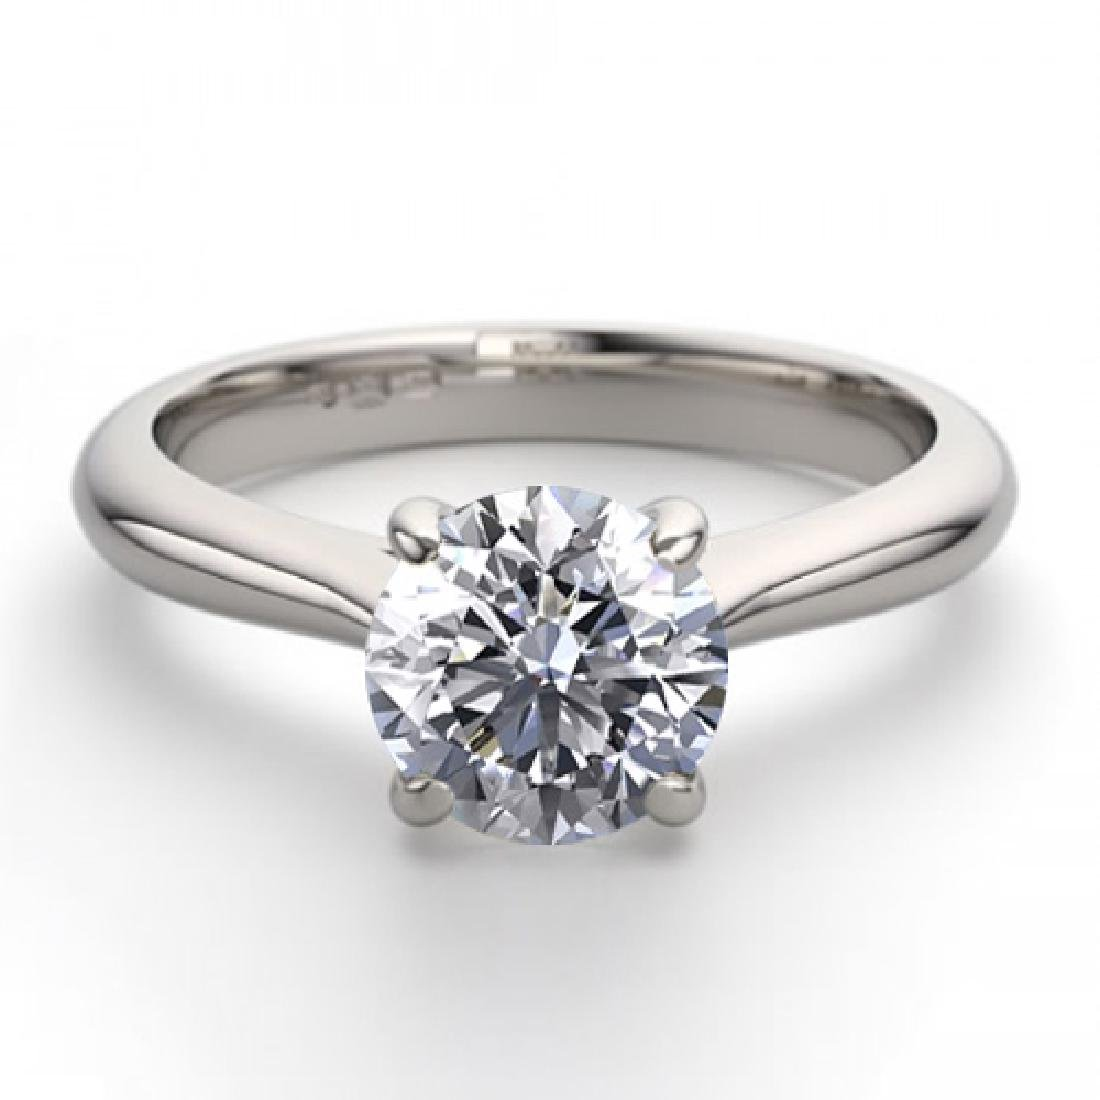 18K White Gold 1.36 ctw Natural Diamond Solitaire Ring